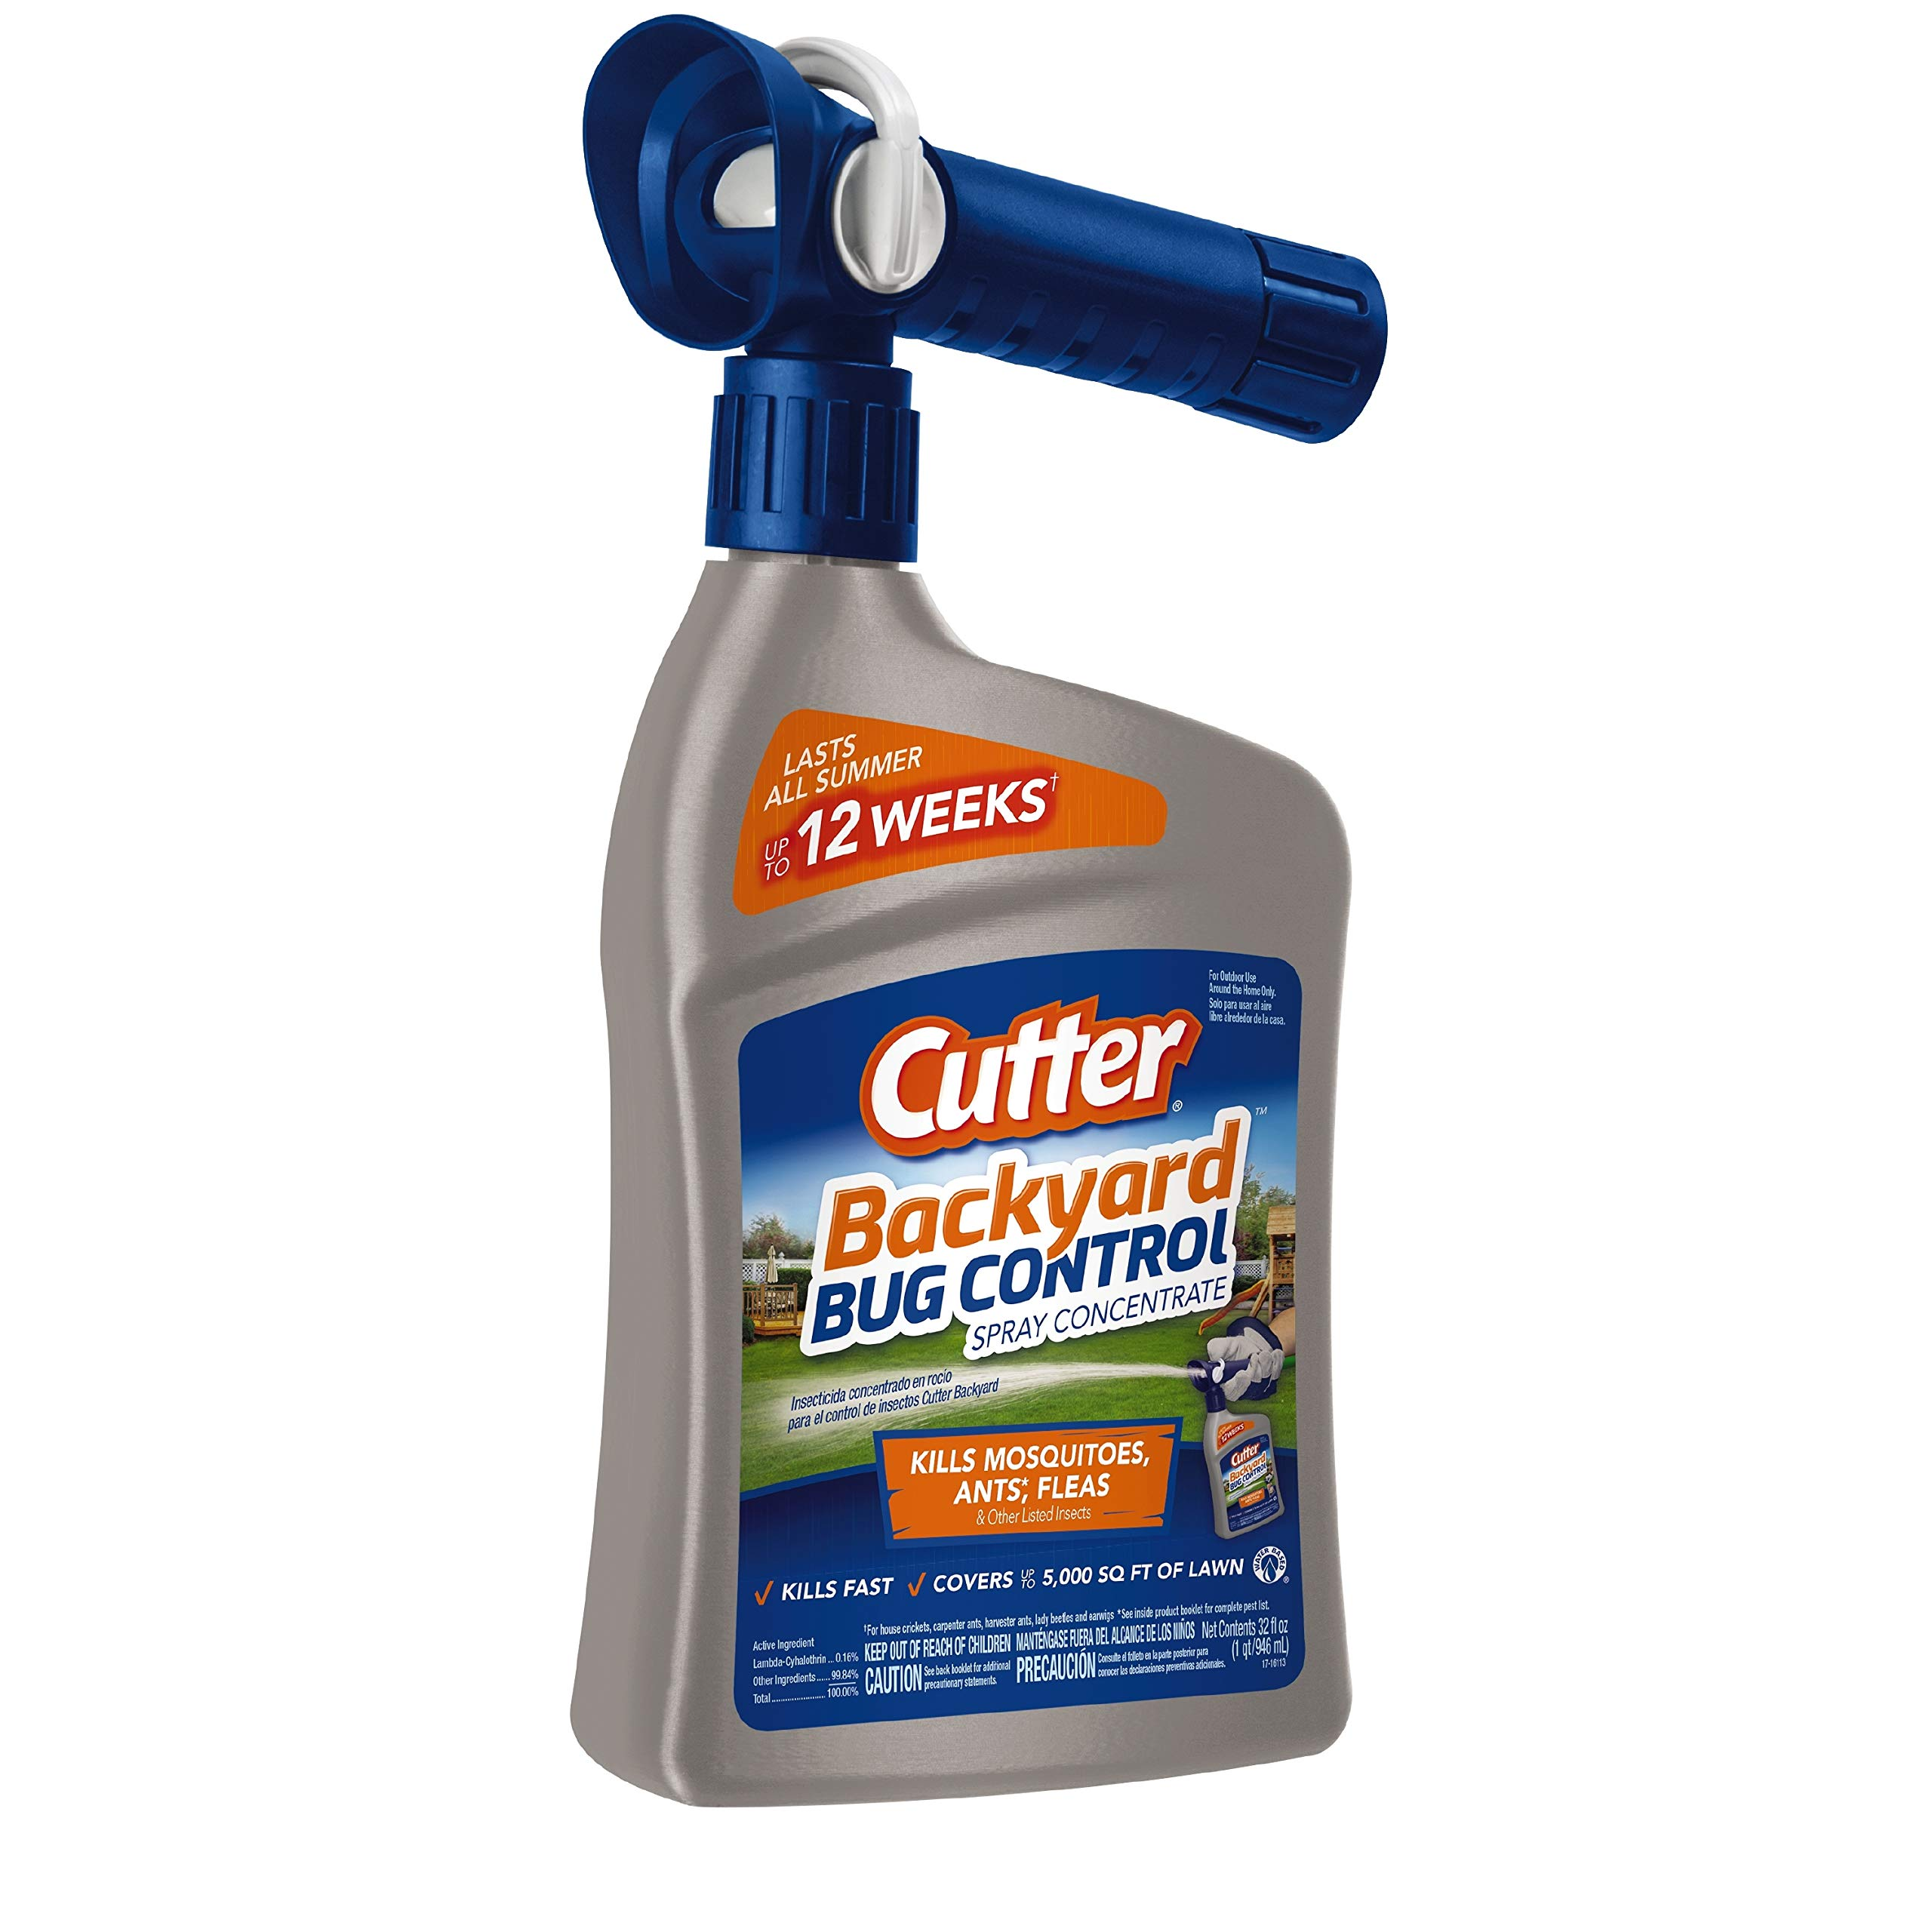 Cutter Backyard Bug Control Spray Concentrate, 32-Ounce, 6-Pack by Cutter